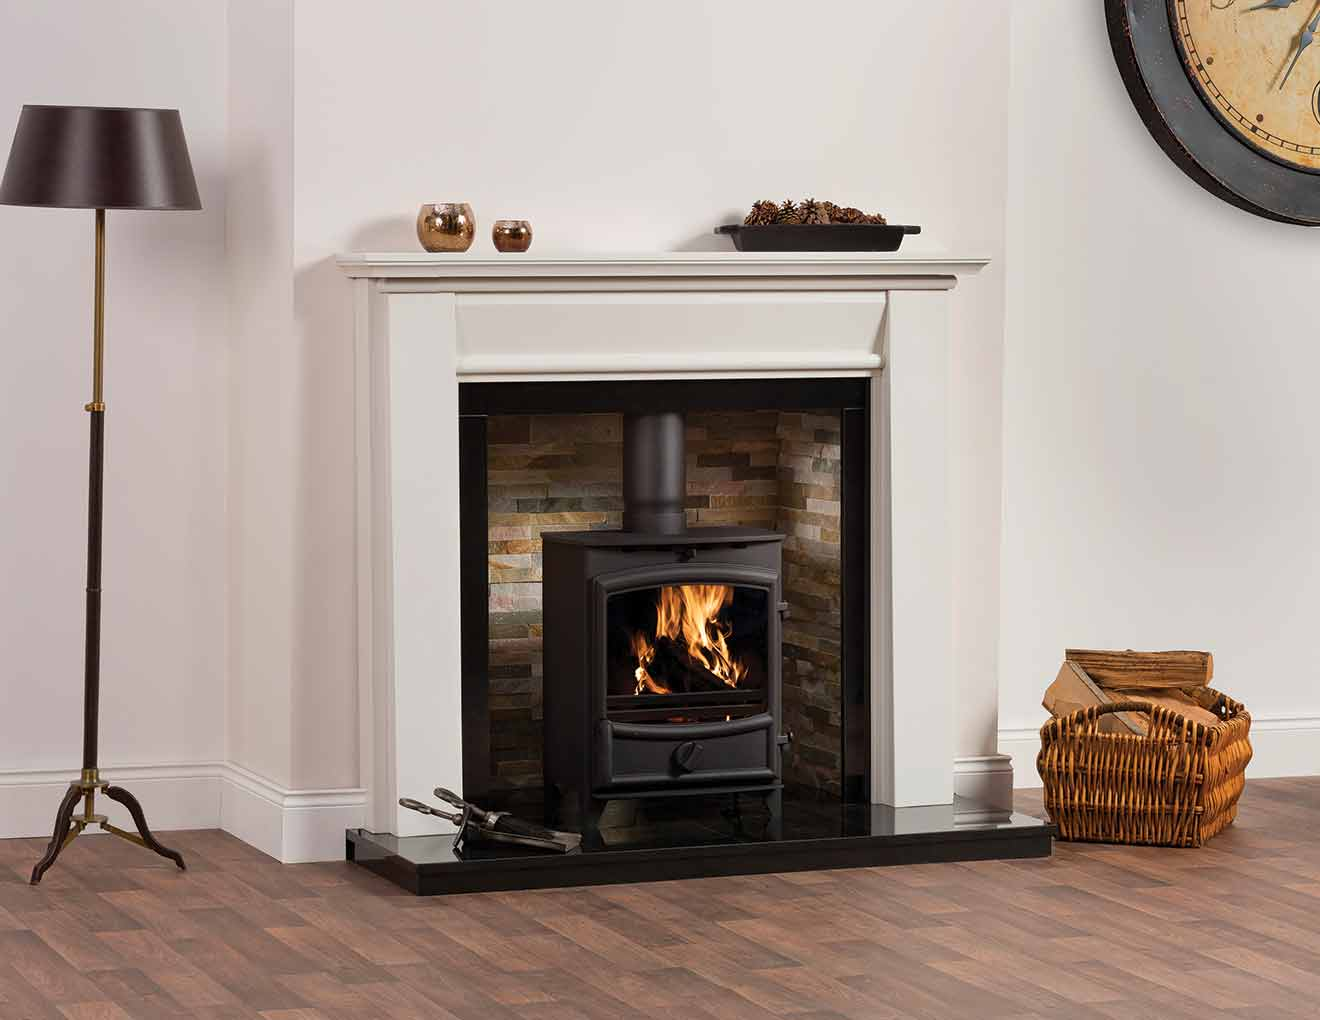 Cologne Fireplace Heat Design